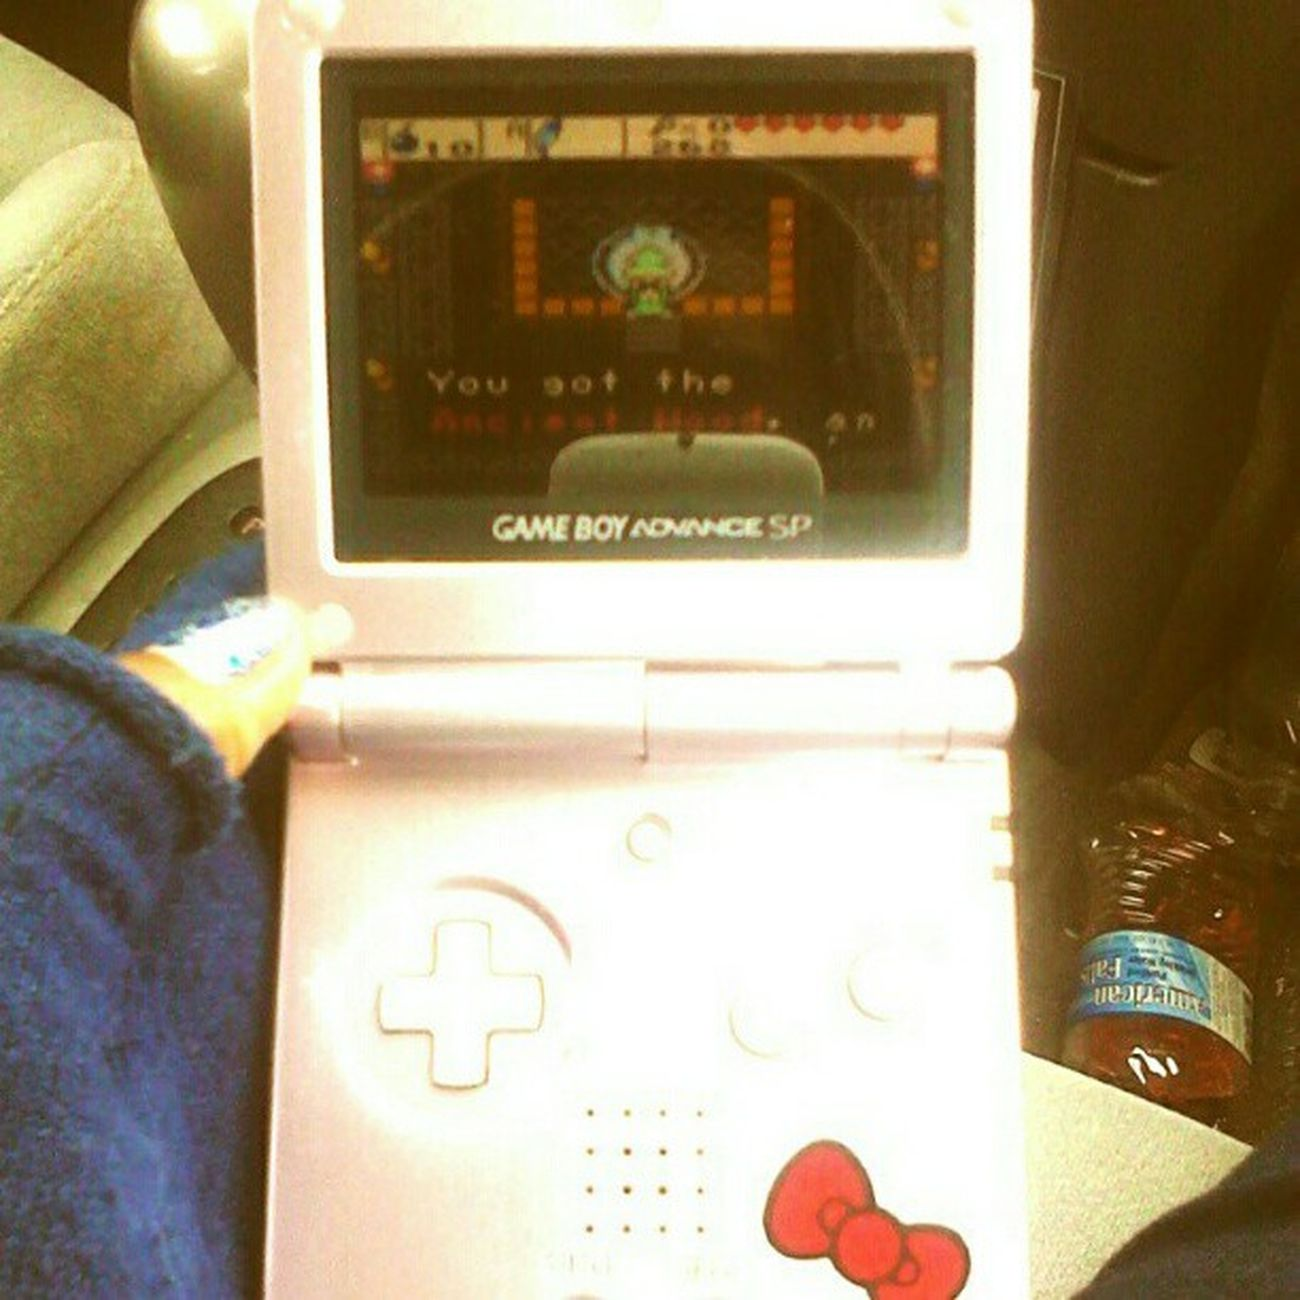 It took me an embarrassing amount of time to complete the wing dungeon on #thelegendofzelda #oracleofages. Now I'm off to locate the 3rd essence! Thelegendofzelda Wtfgamersonly Vintage Nintendolife Oldschool Gameboyadvance Gaming Wtfgo Retro Gameboyadvancesp Nintendo Oracleofages Link Ninstagram Zelda Snapplay Gamer Hardcore_gamer_girls Hellokitty Hellokittyjunkie Videogames Tloz Gameboy Retrogamimg Igersnintendo Vintagevideogames Handheld LegendOfZelda